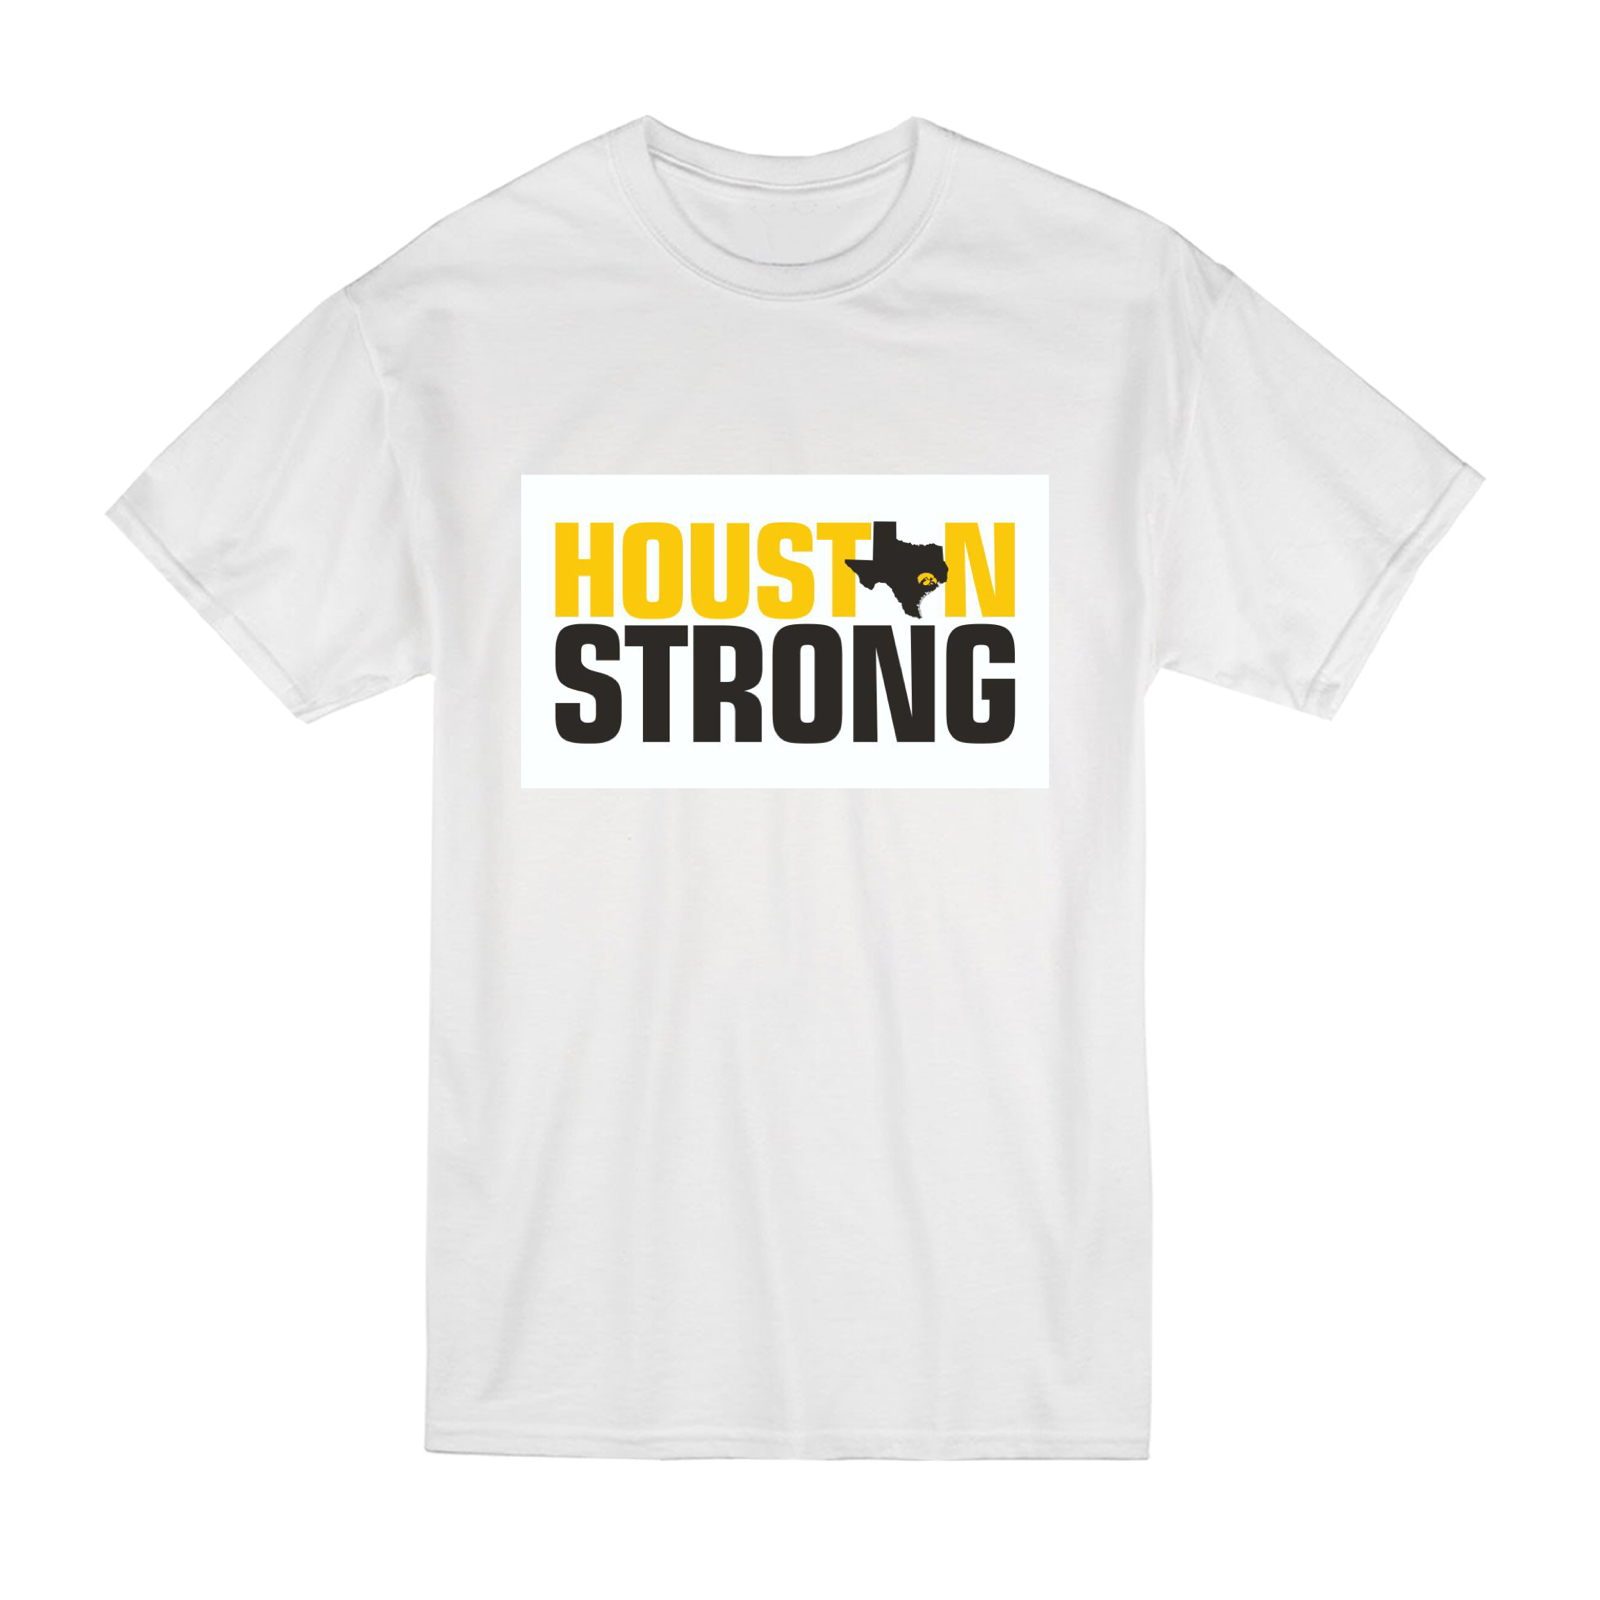 HOUSTON STRONG Hawkeye T-Shirts launched to benefit Hurricane Harvey survivors